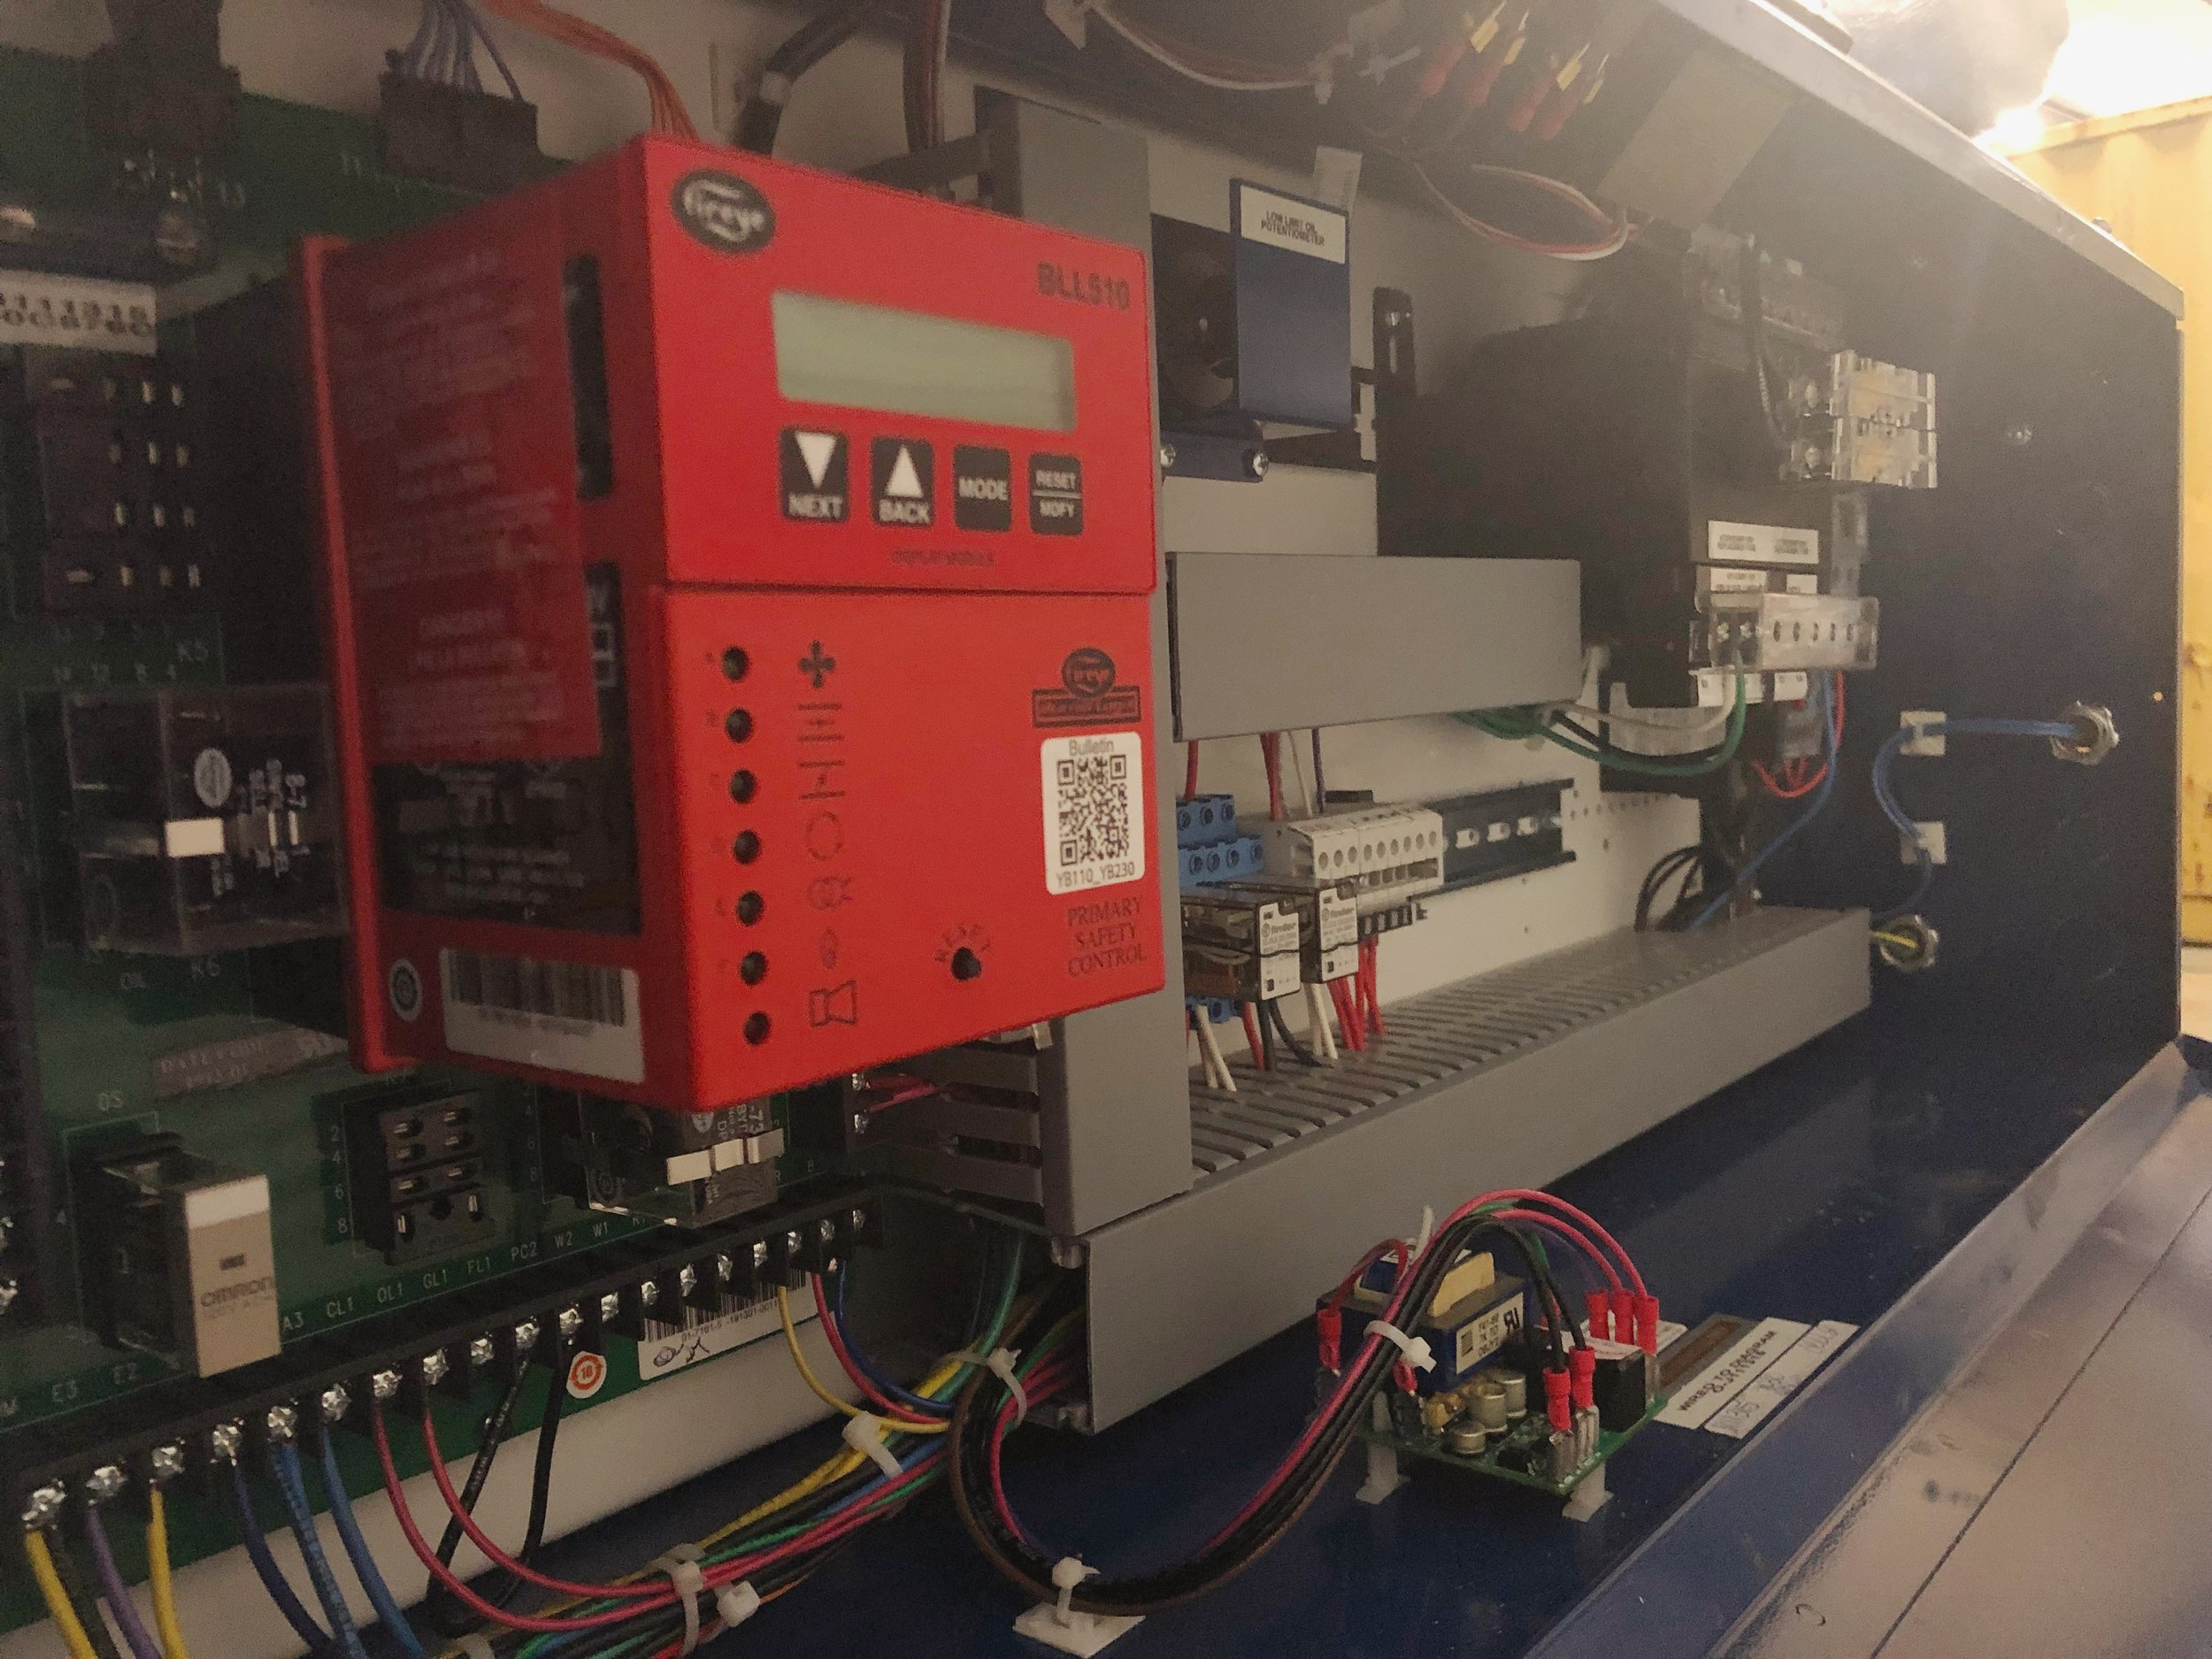 combustion and control systems - Al Hill Boiler is pleased to carry the following Control Lines to assist you in effectively and efficiently maintaining your Boiler Room:-Honeywell-Fenwal-Johnson-Robertshaw-White Rodgers